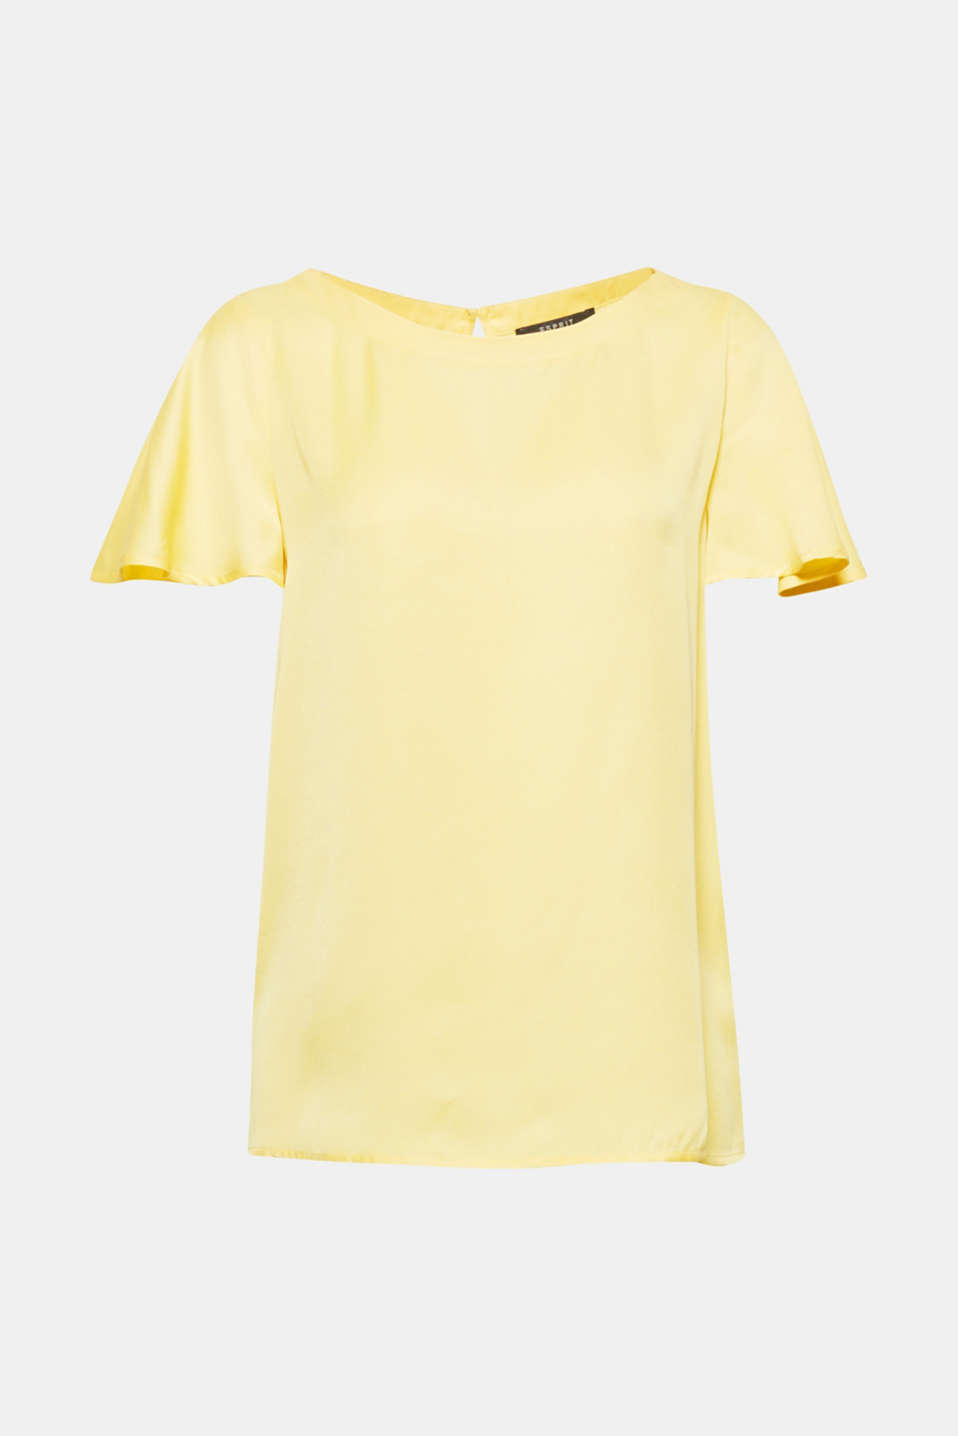 This eye-catching blouse in trendy yellow with short flounce sleeves will gibe your spring look that certain something!